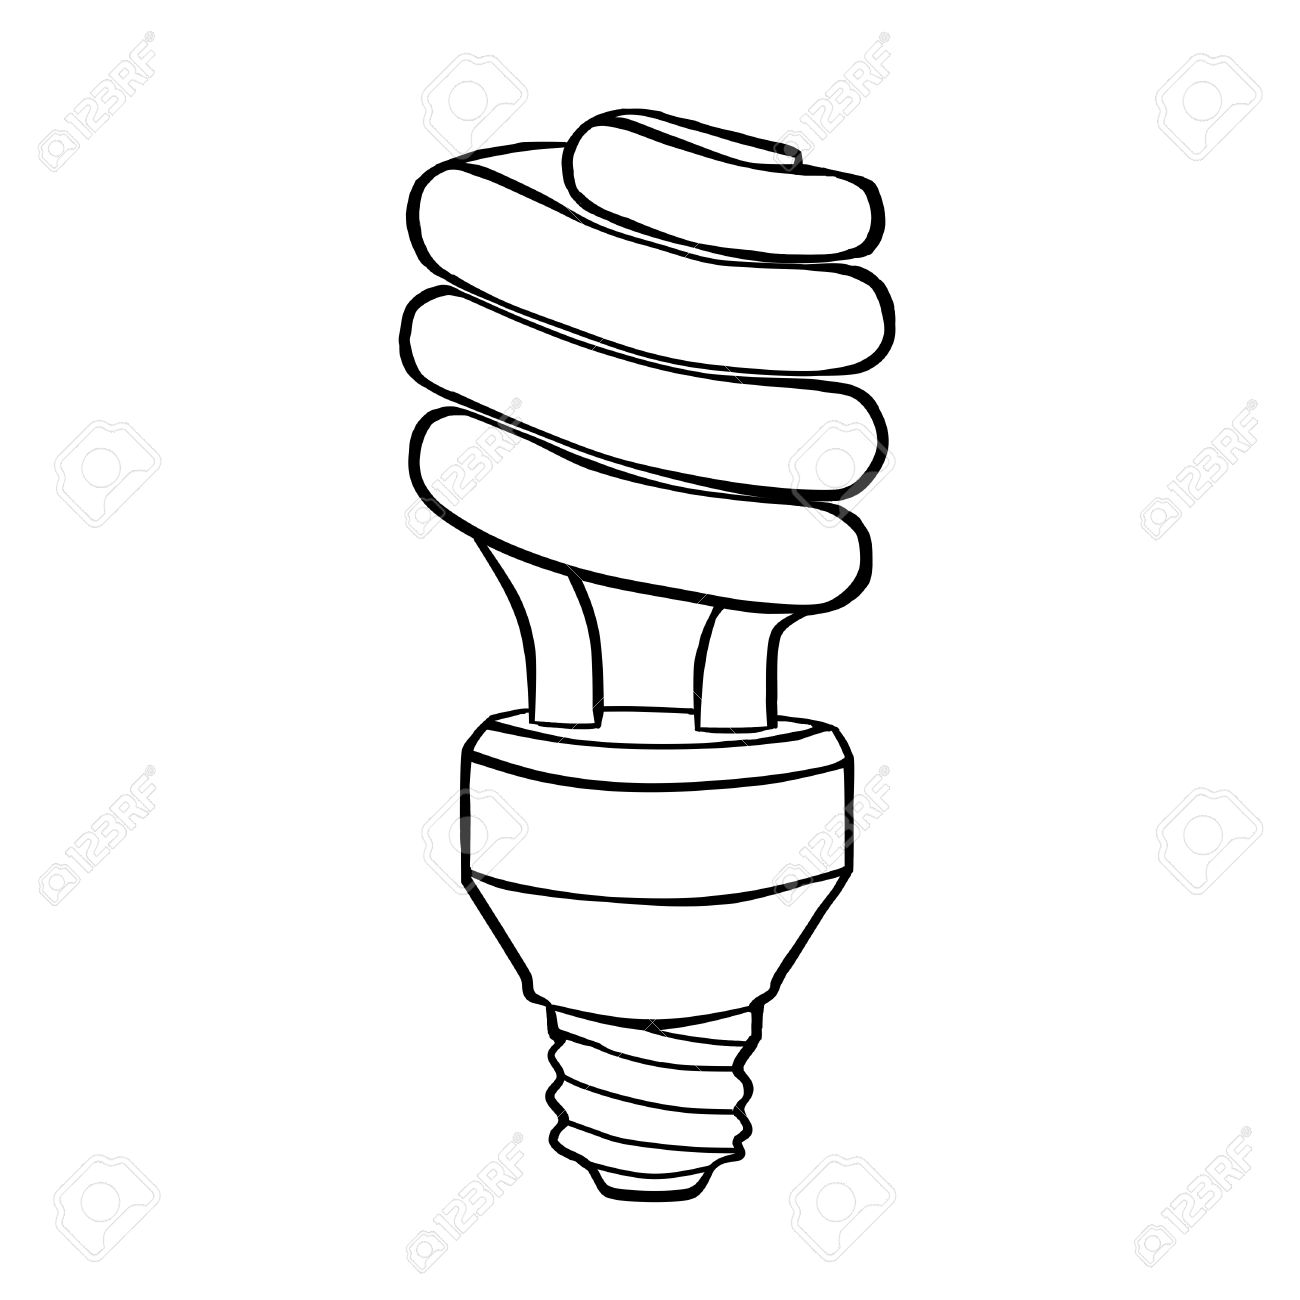 spiral energy saving electric discharge l contour drawing stock  spiral energy saving electric discharge l contour drawing stock photo 37493461